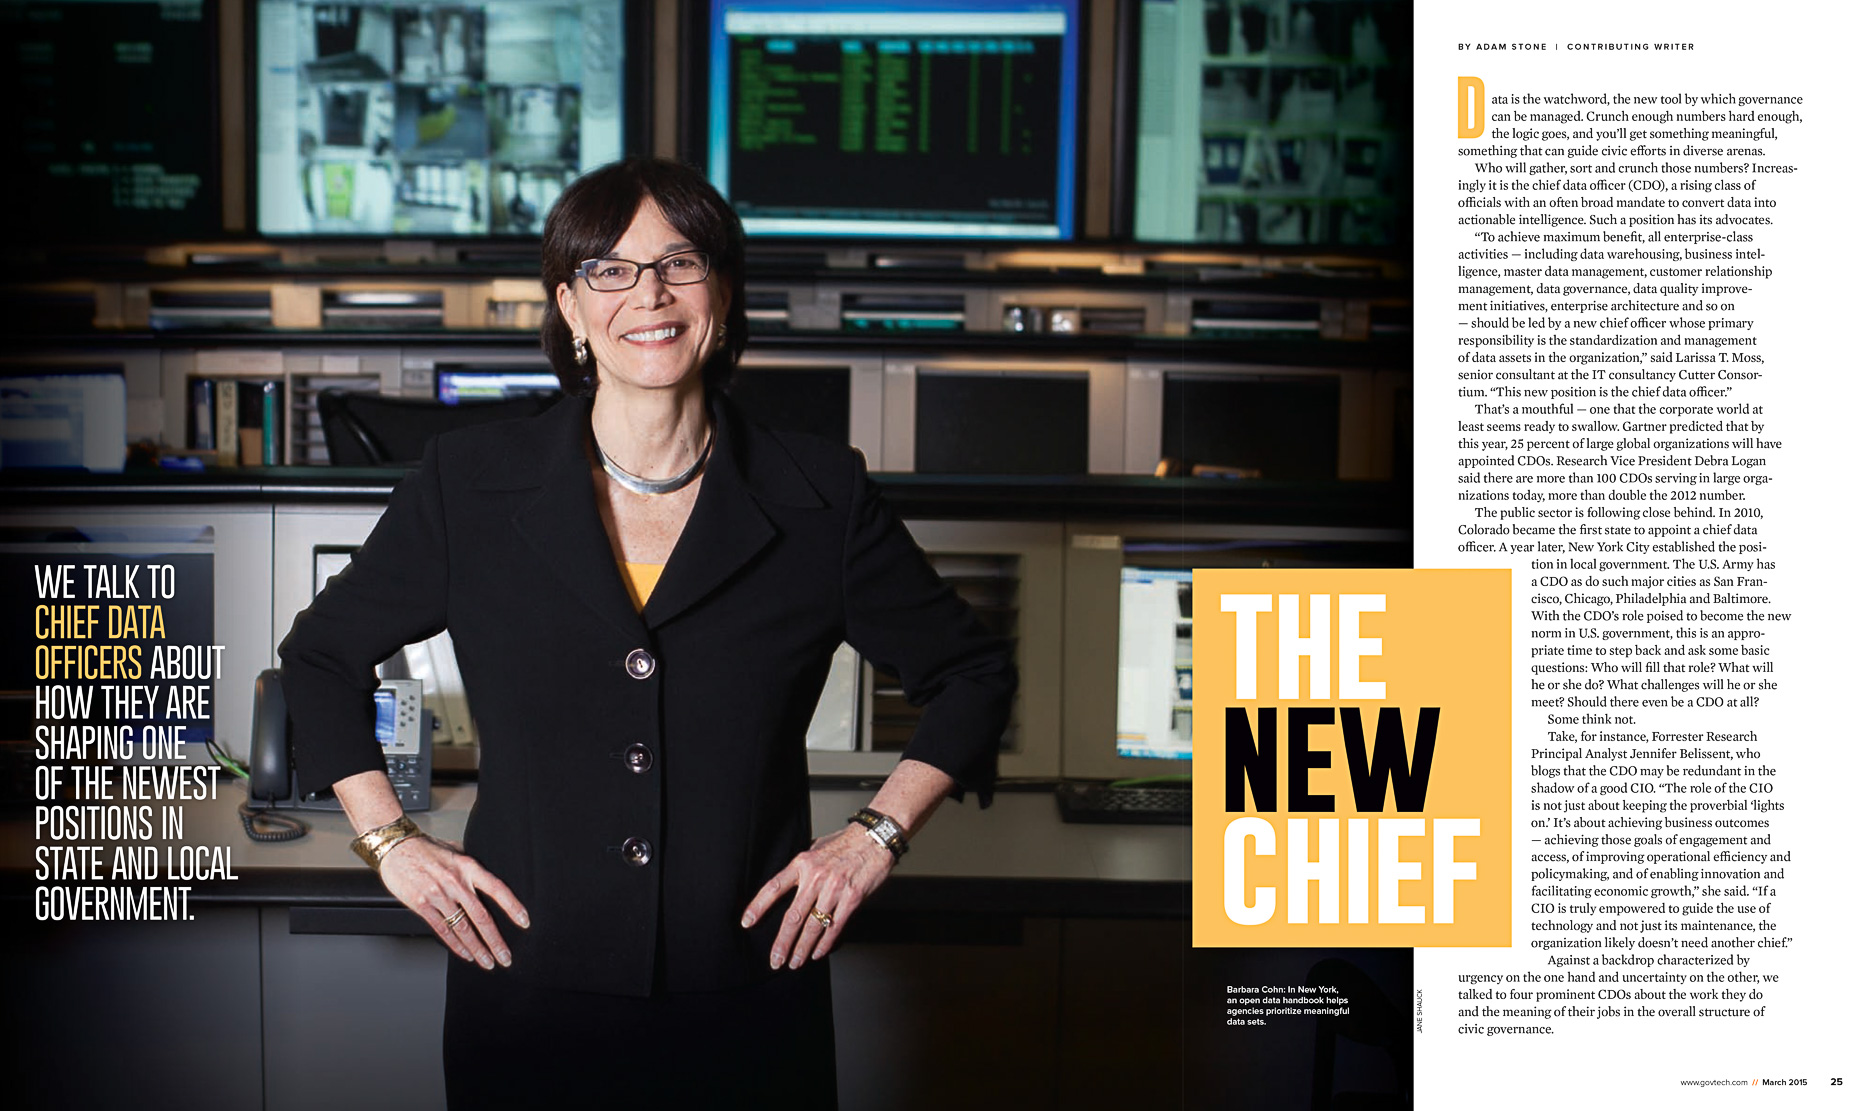 0057_0002_robin_cohn_chief_data_officer_new_york_government_tech_magazine_hartford_ct_advertising_editorial_corporate_business_portrait_photographer_photojane